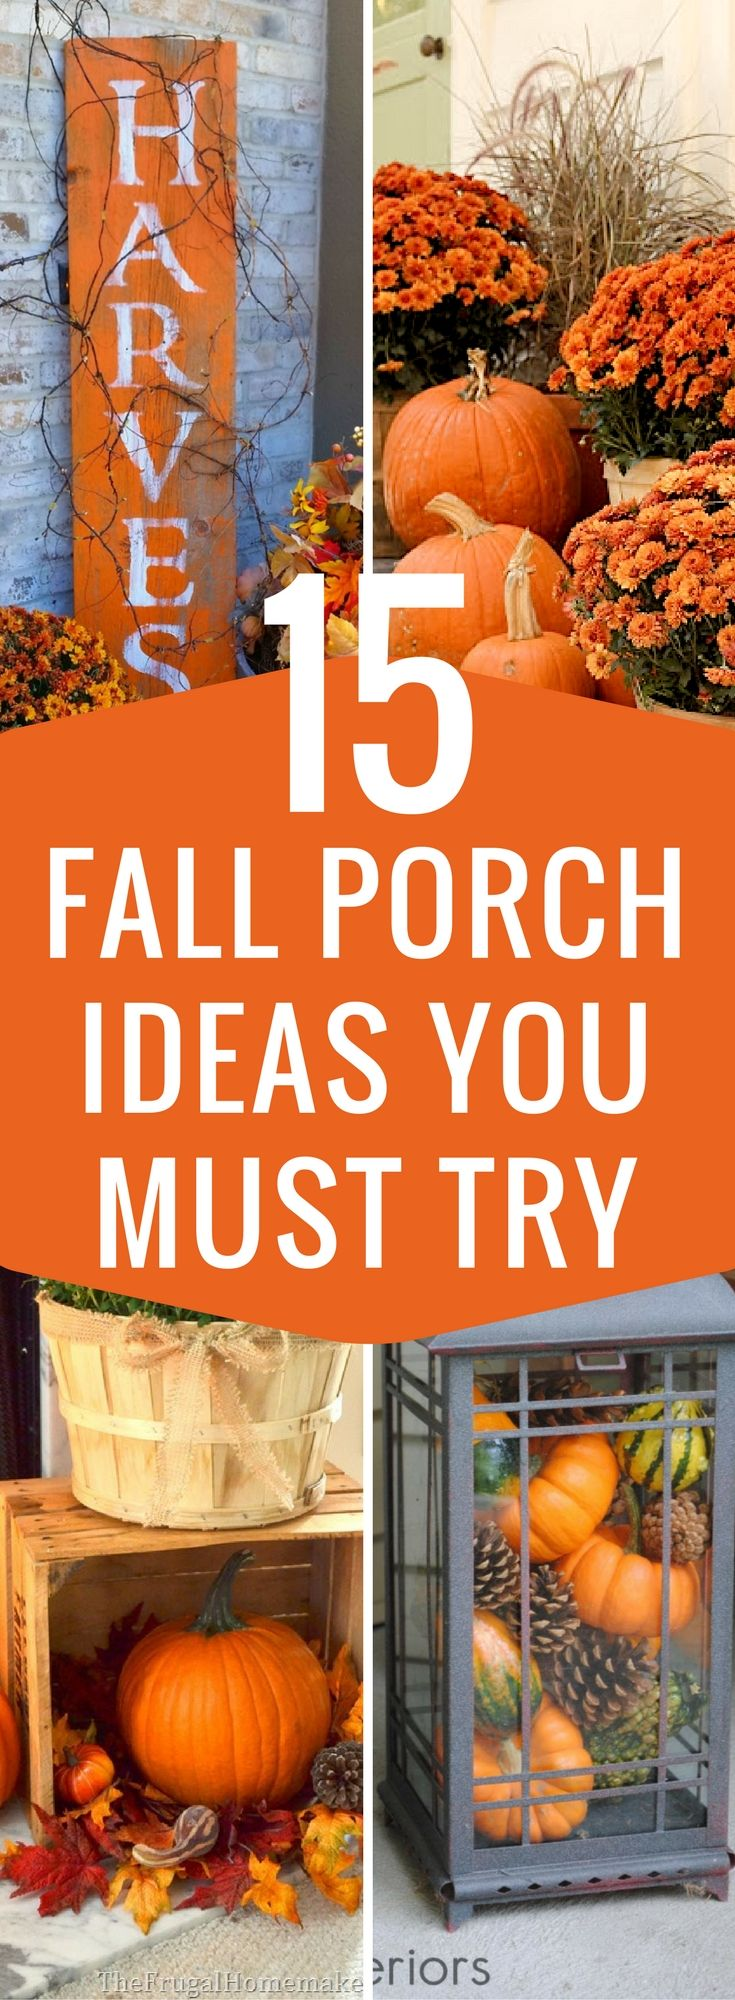 DIY Fall Crafts For Your Home And Yard | Ideas for Fall